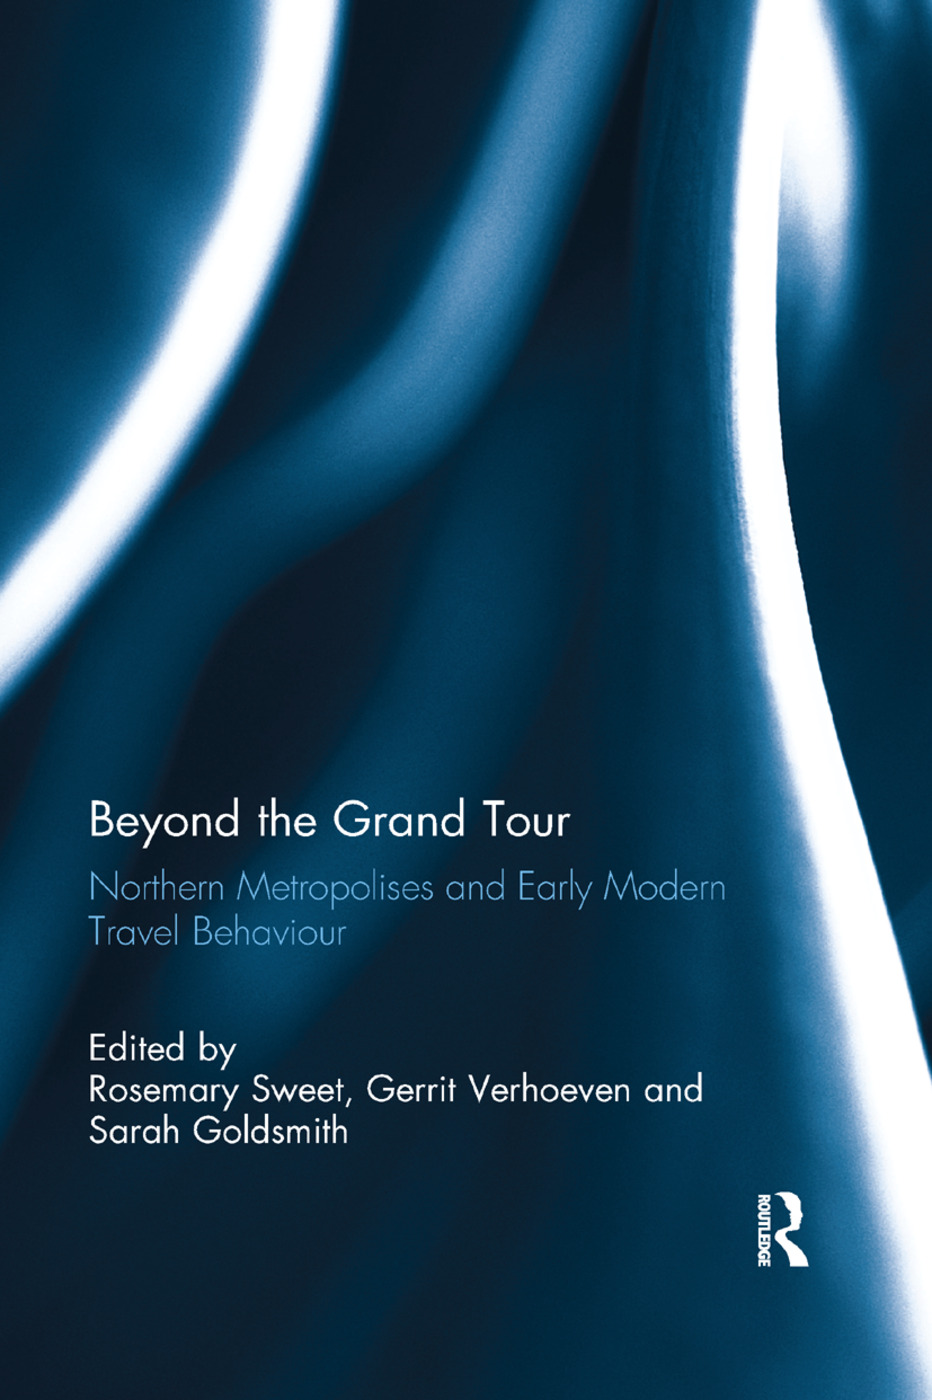 Beyond the Grand Tour: Northern Metropolises and Early Modern Travel Behaviour book cover